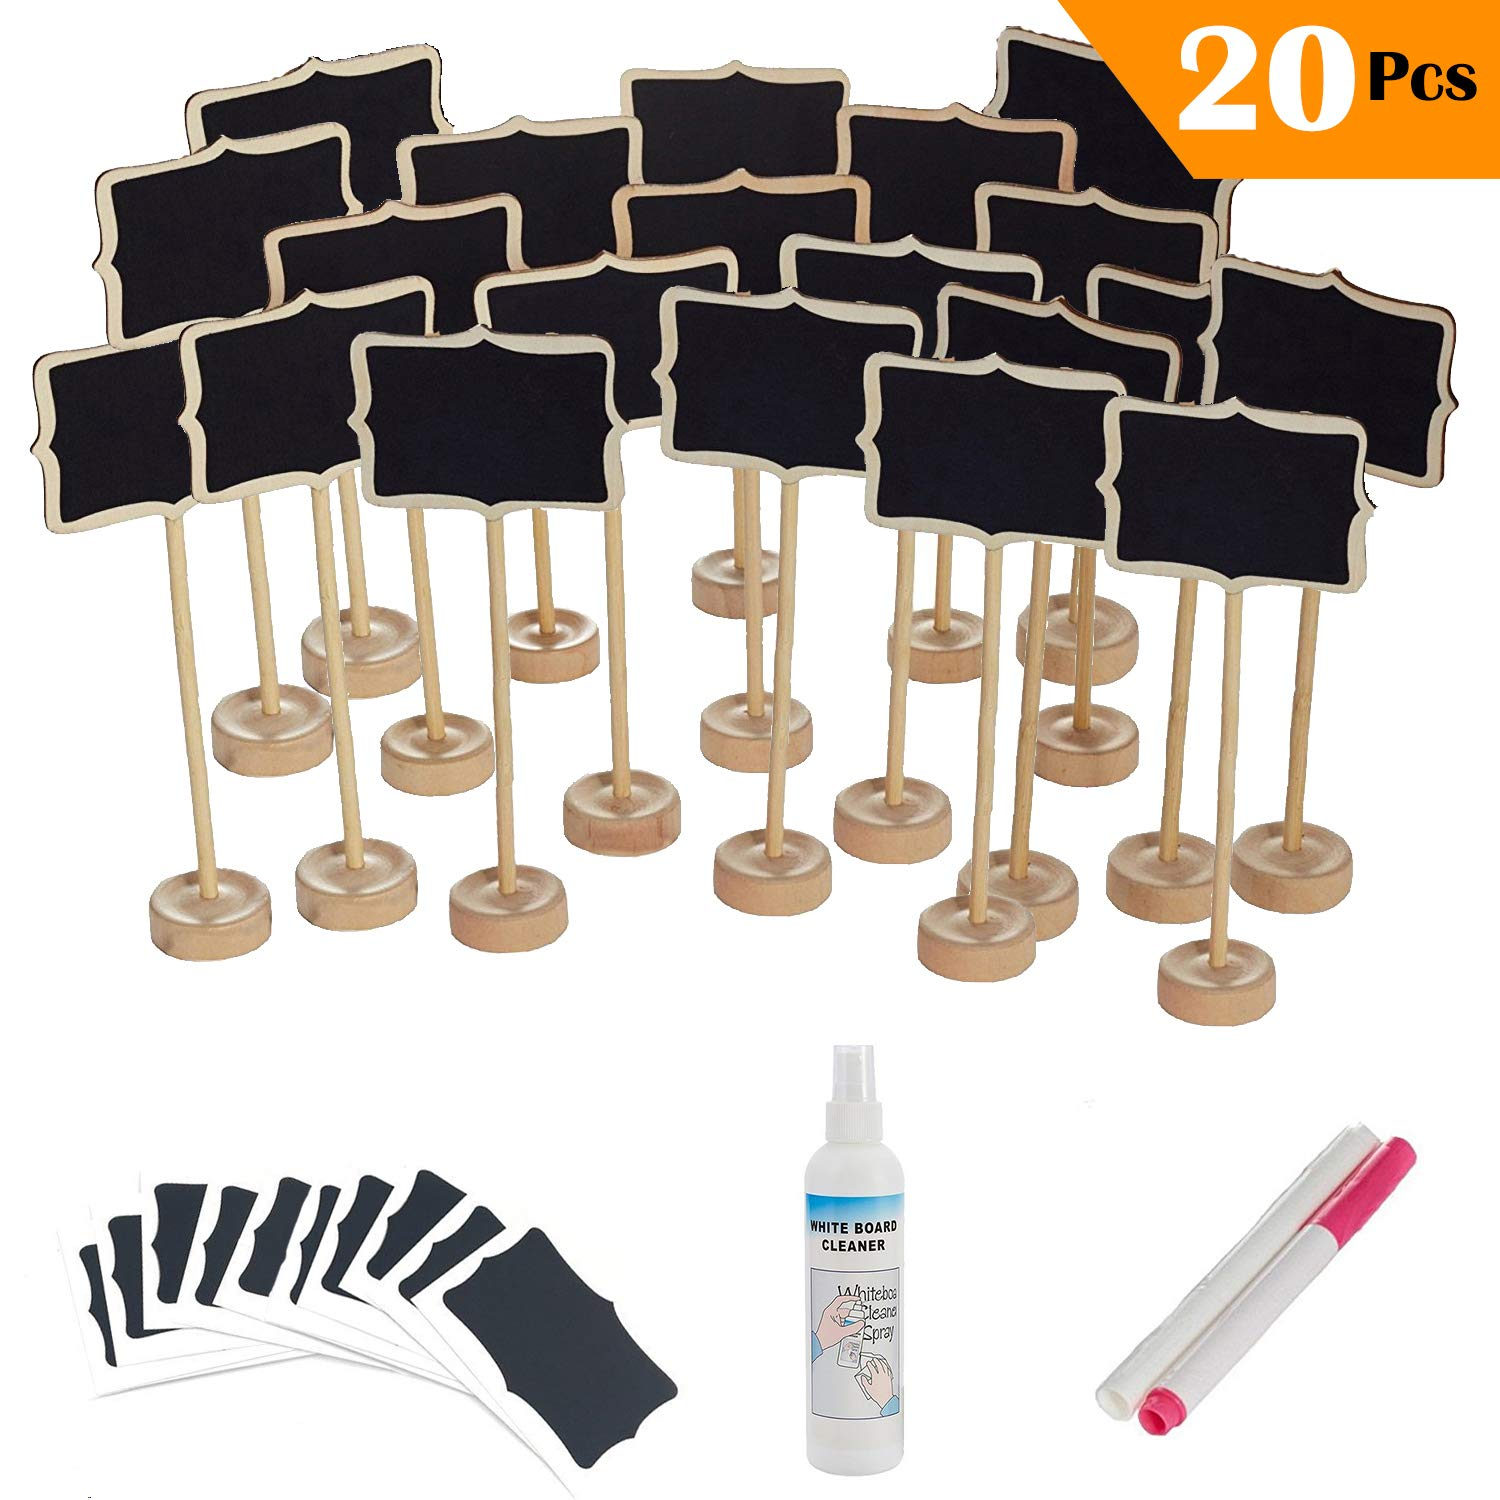 20 Pcs Mini Rectangle Chalkboard with Stand for Message Board Signs EBYTOP Chalkboard-20PCG